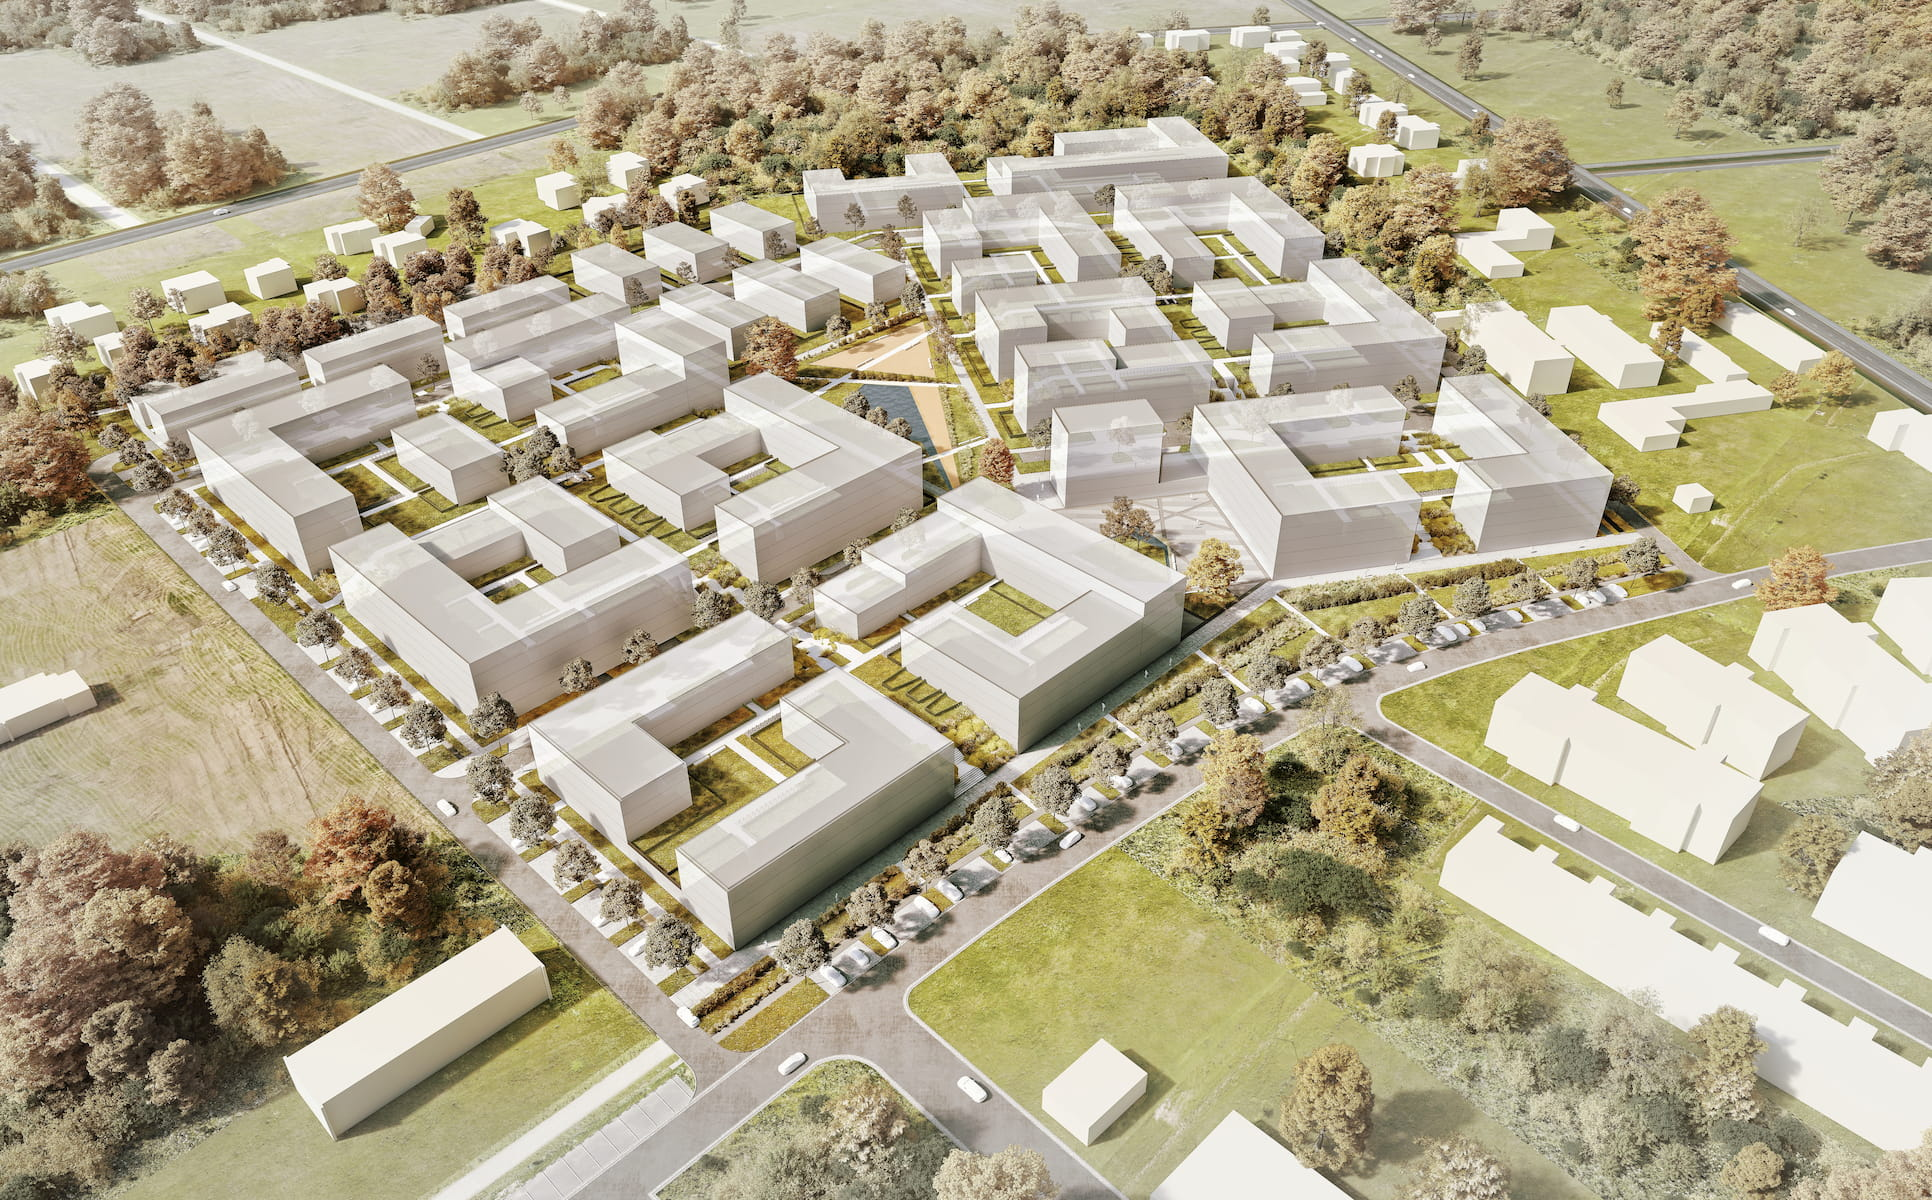 Urban design concept for Housing estate in Wyszkow competition entry 4AM Architekci 2019